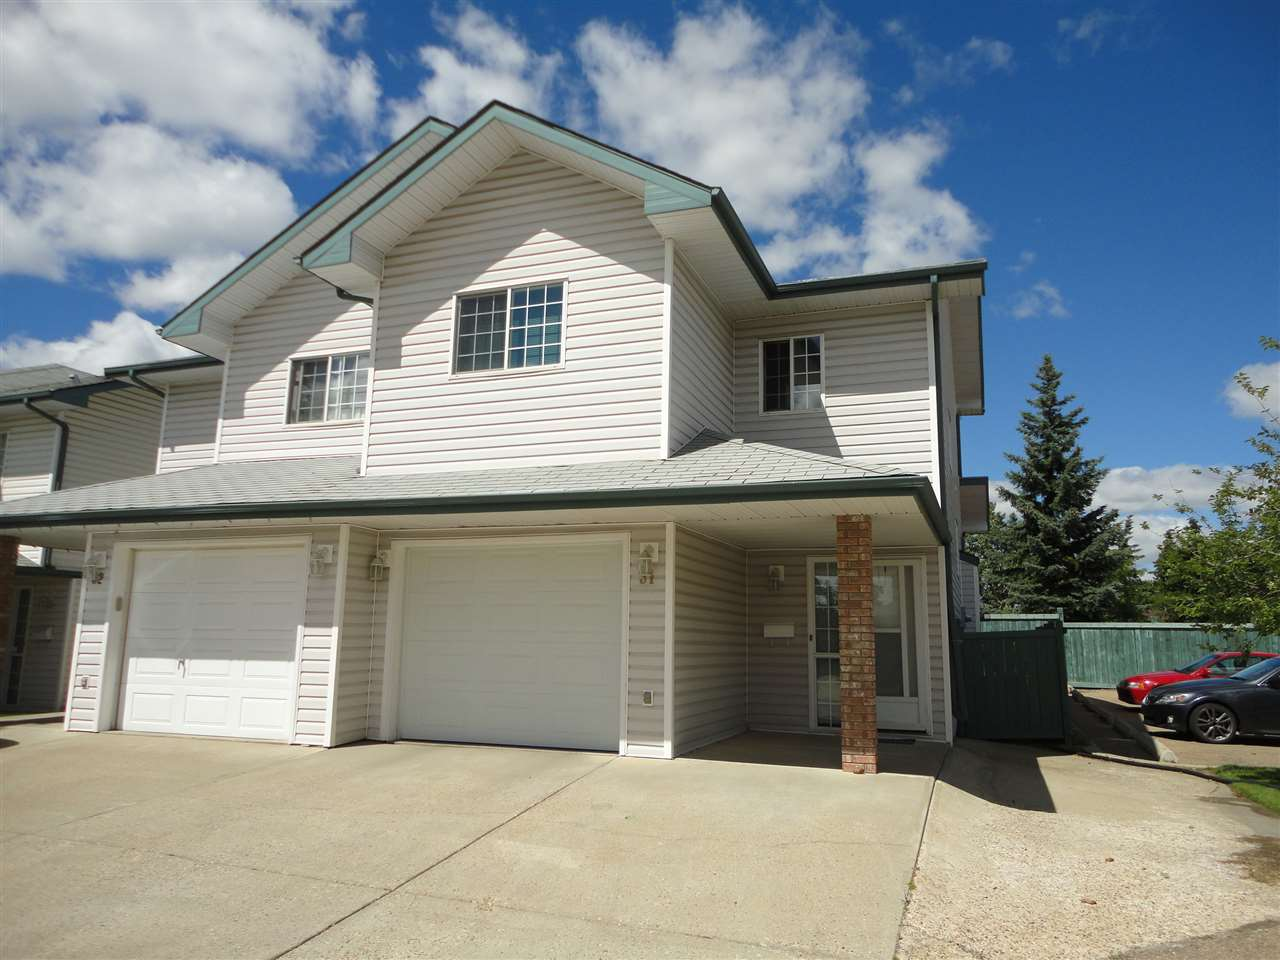 Main Photo: 31 843 YOUVILLE Drive W in Edmonton: Zone 29 Townhouse for sale : MLS® # E4072835